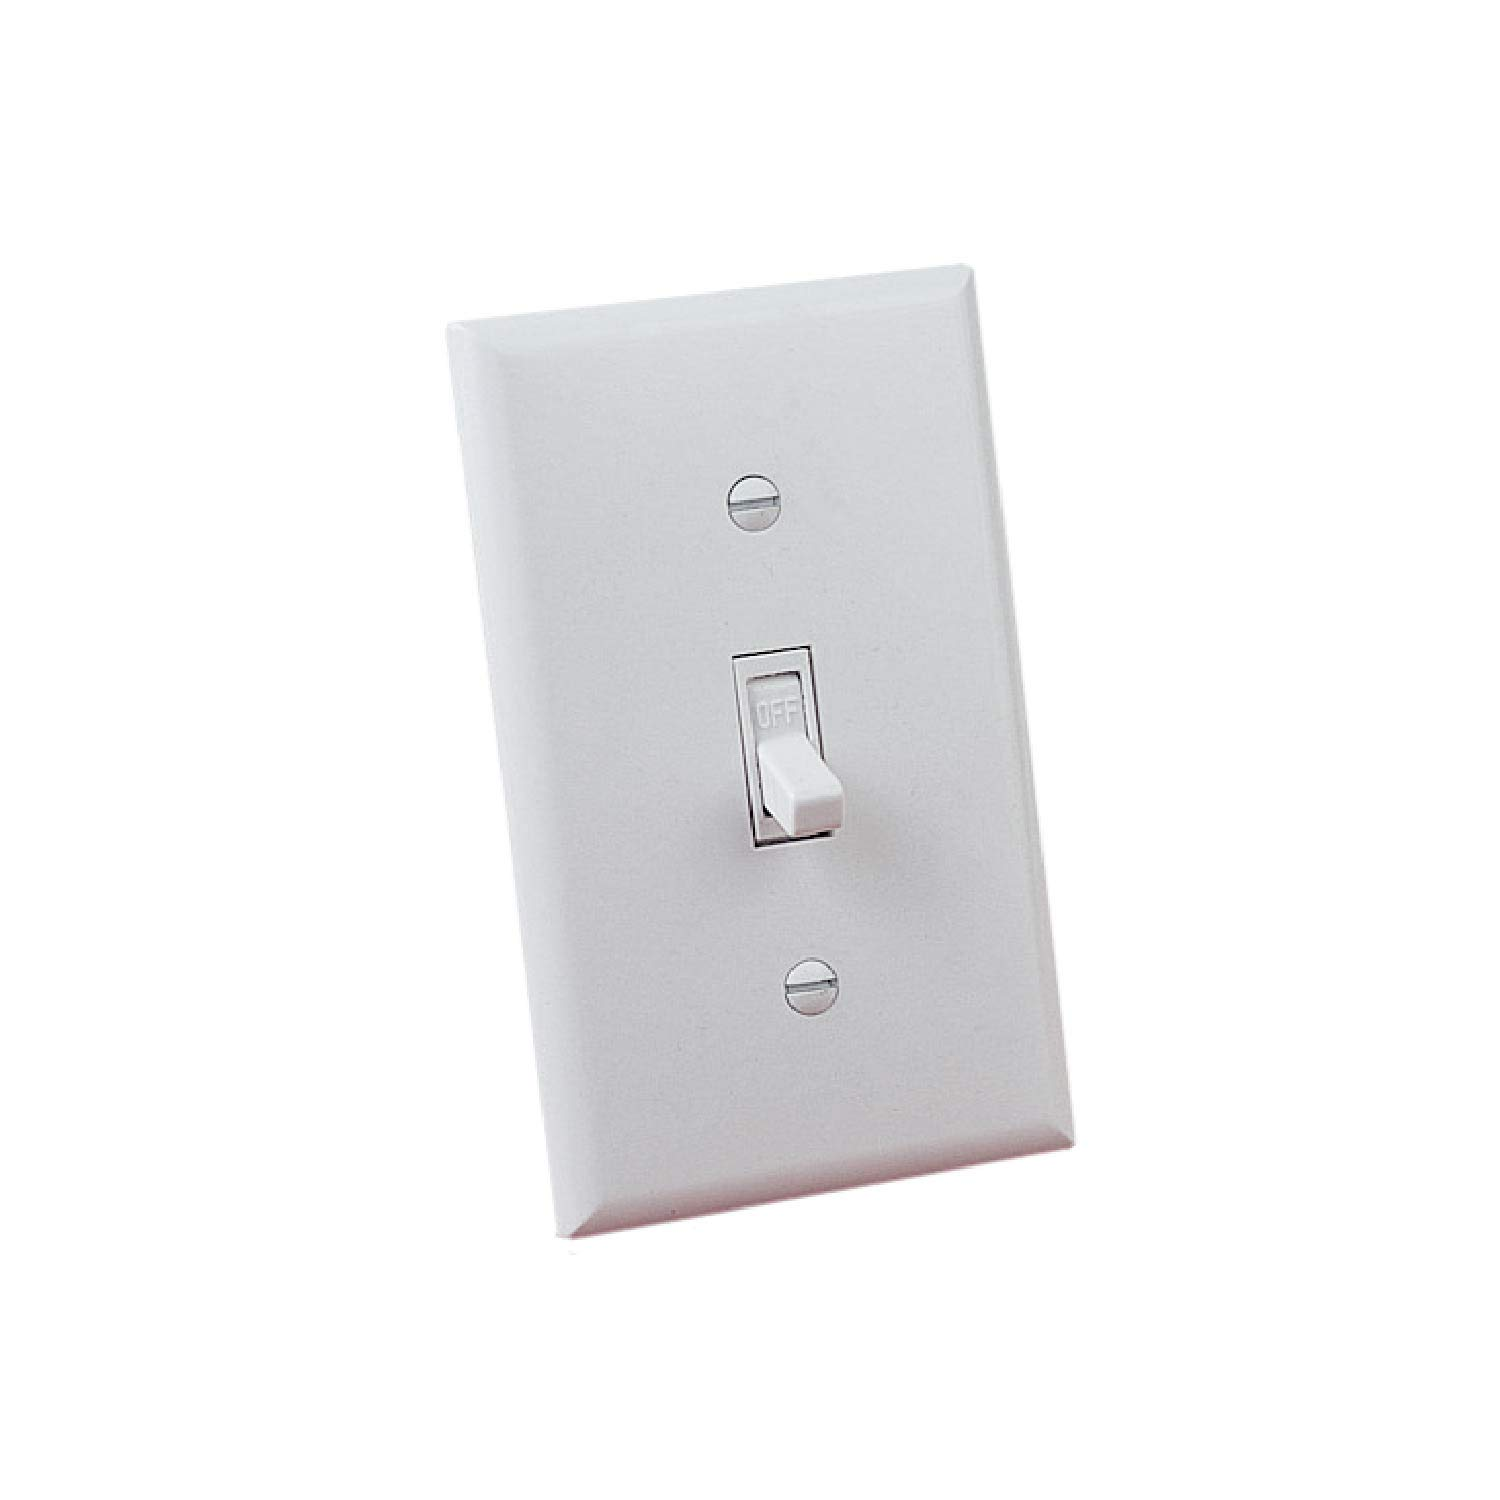 Rasmussen WS-1 Wired Wall Switch On/Off Firepalce Remote Control - (RAS-WS-1) by Rasmussen